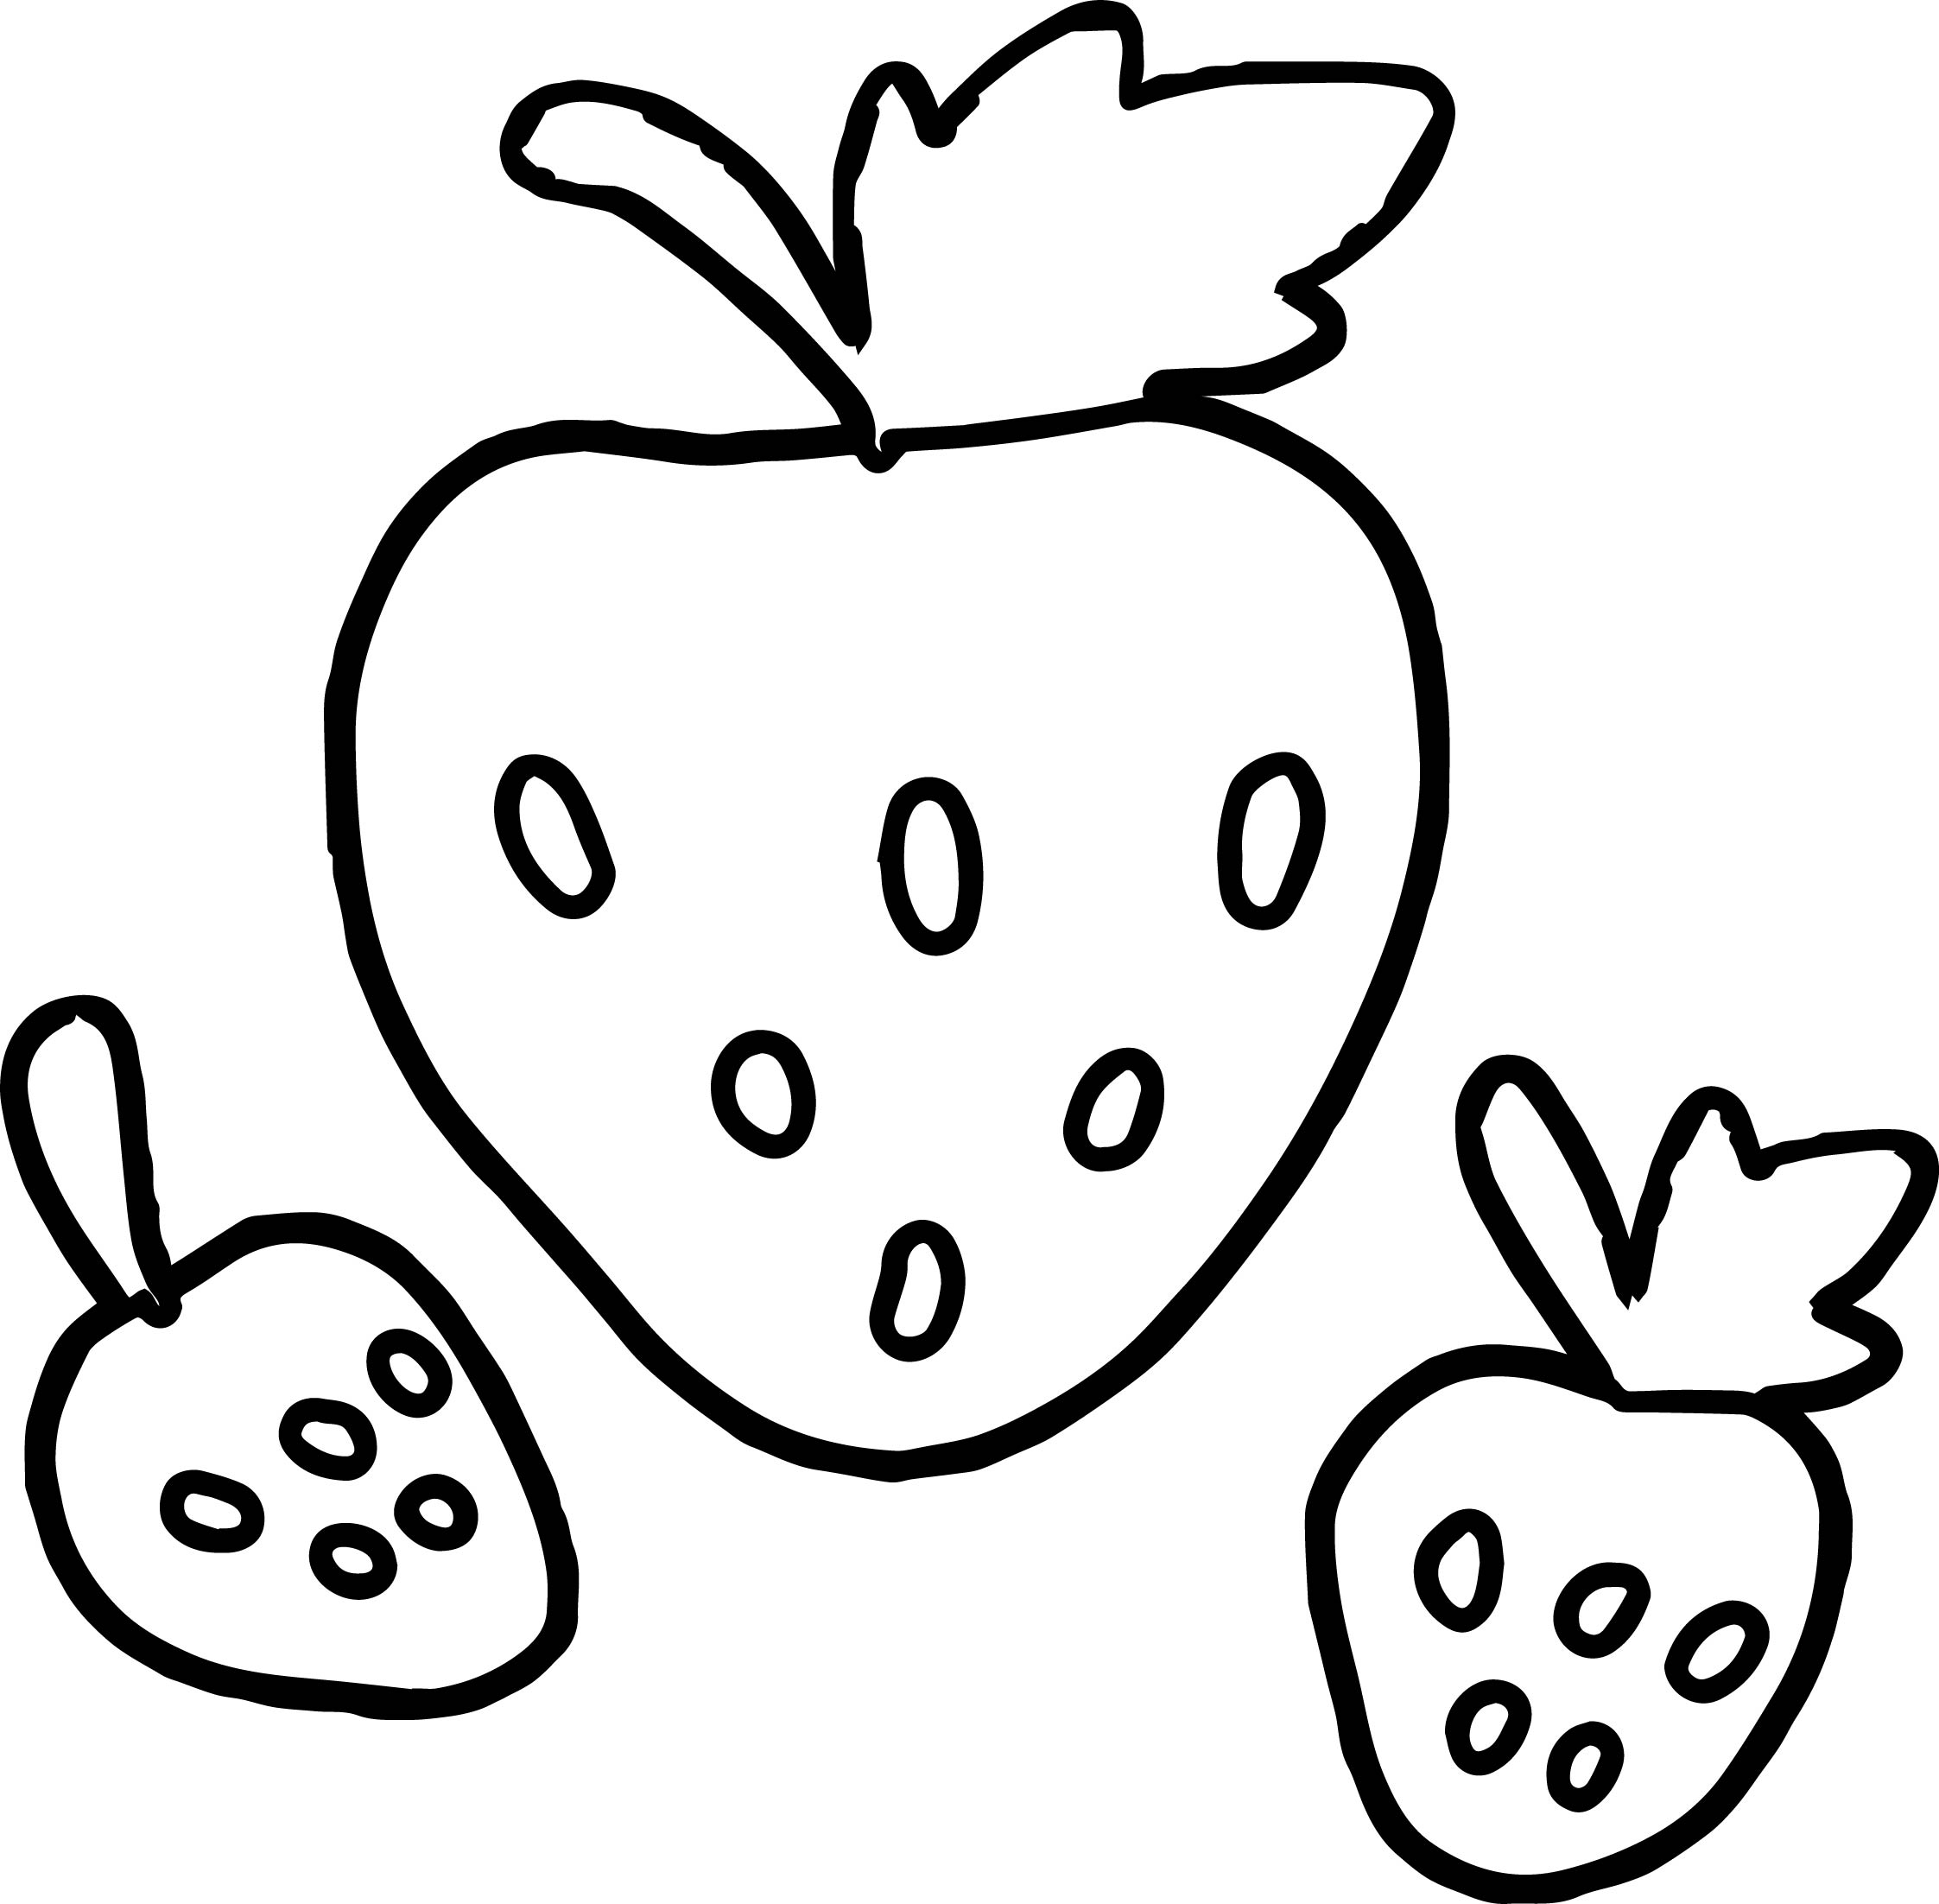 2245x2204 Basic Three Strawberry Coloring Page Wecoloringpage